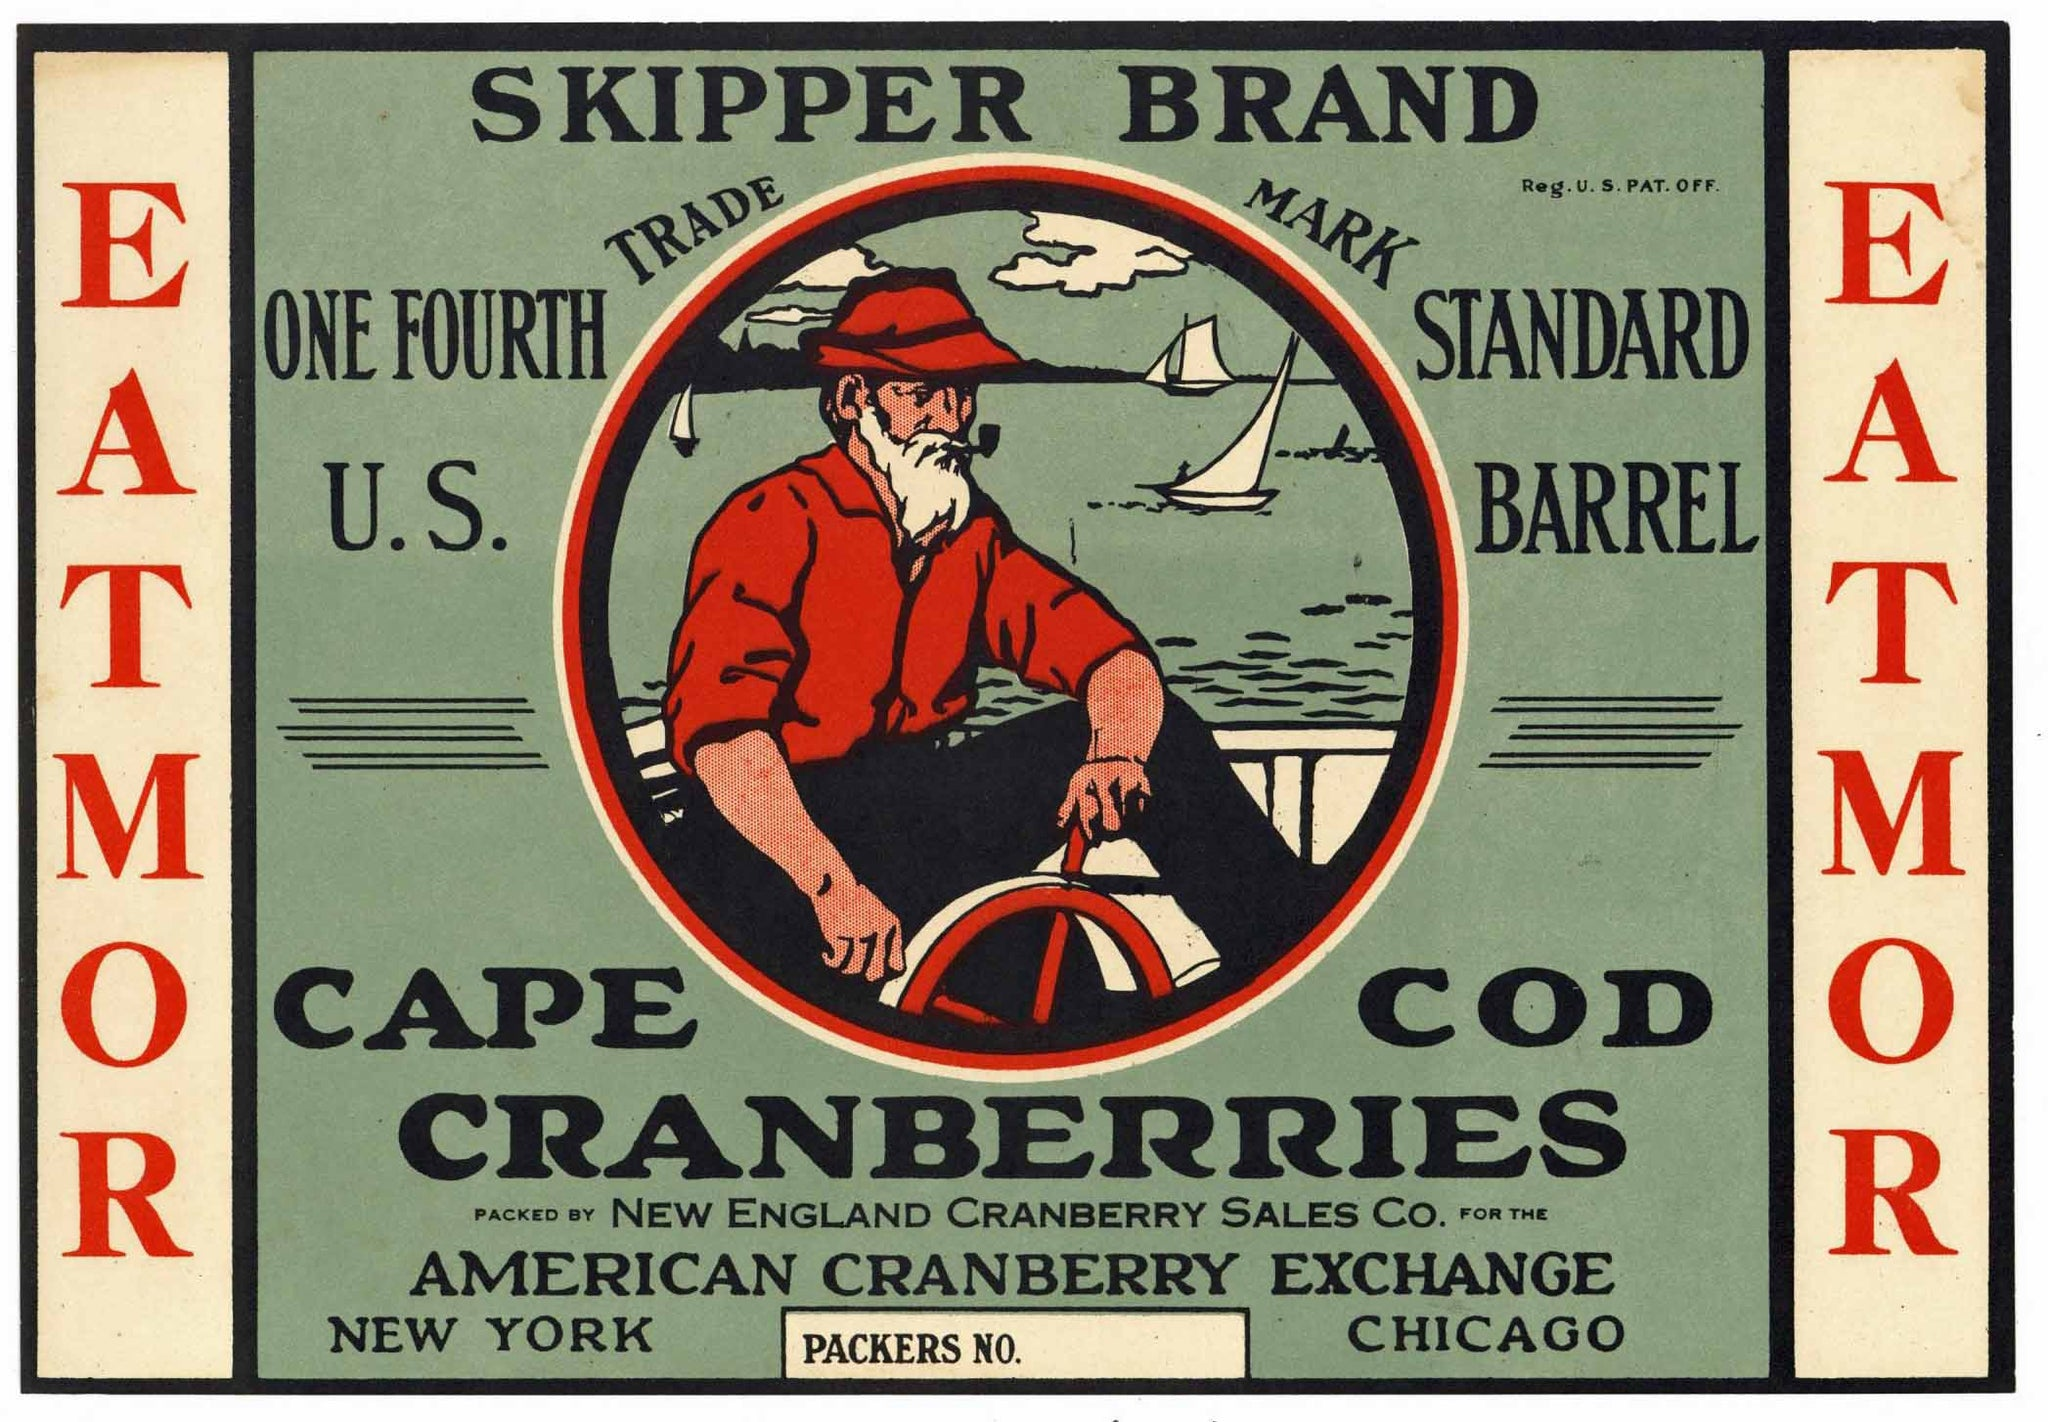 Skipper Brand Vintage Cape Cod Cranberry Crate Label, 1/4, grey